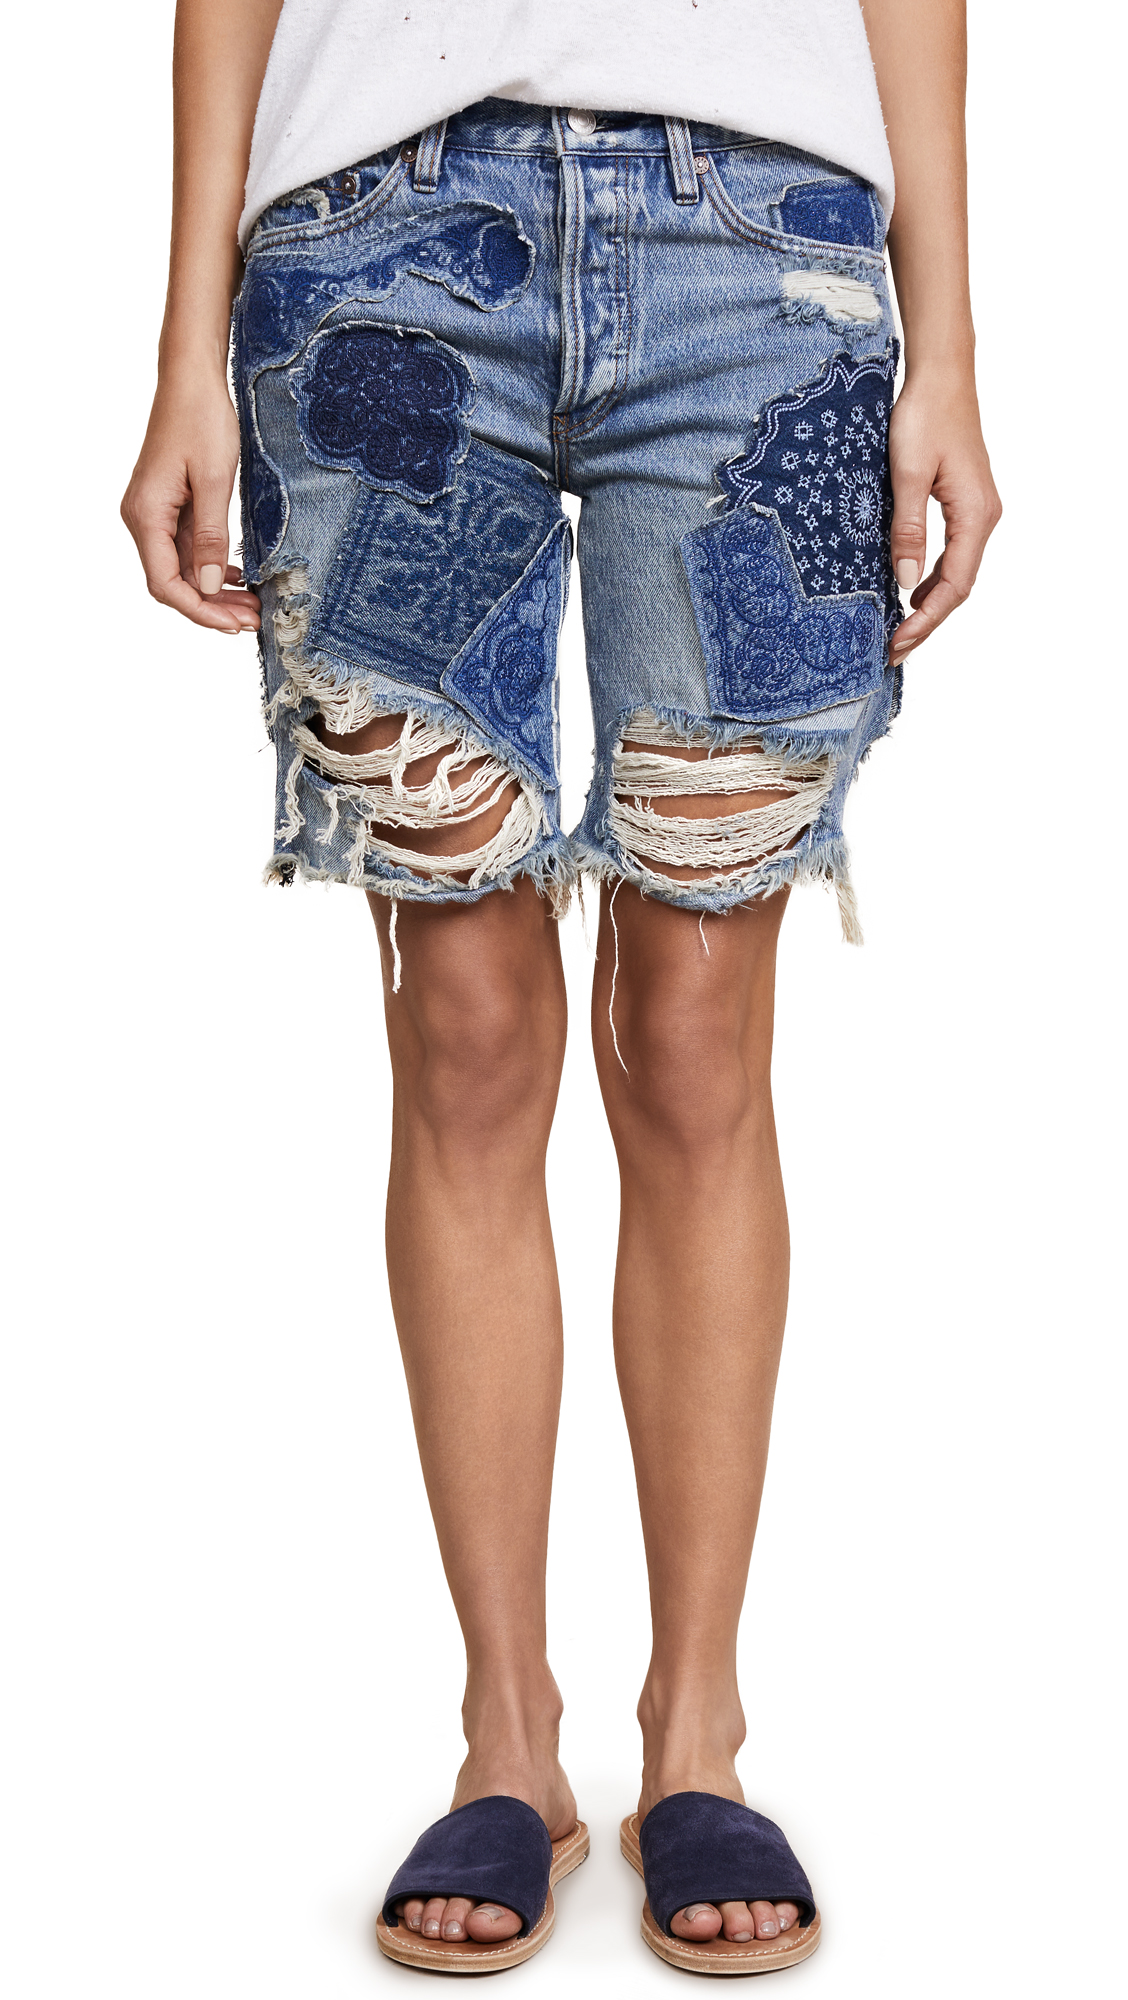 Free People Heart Breaker Patched & Embroidered Shorts - Blue